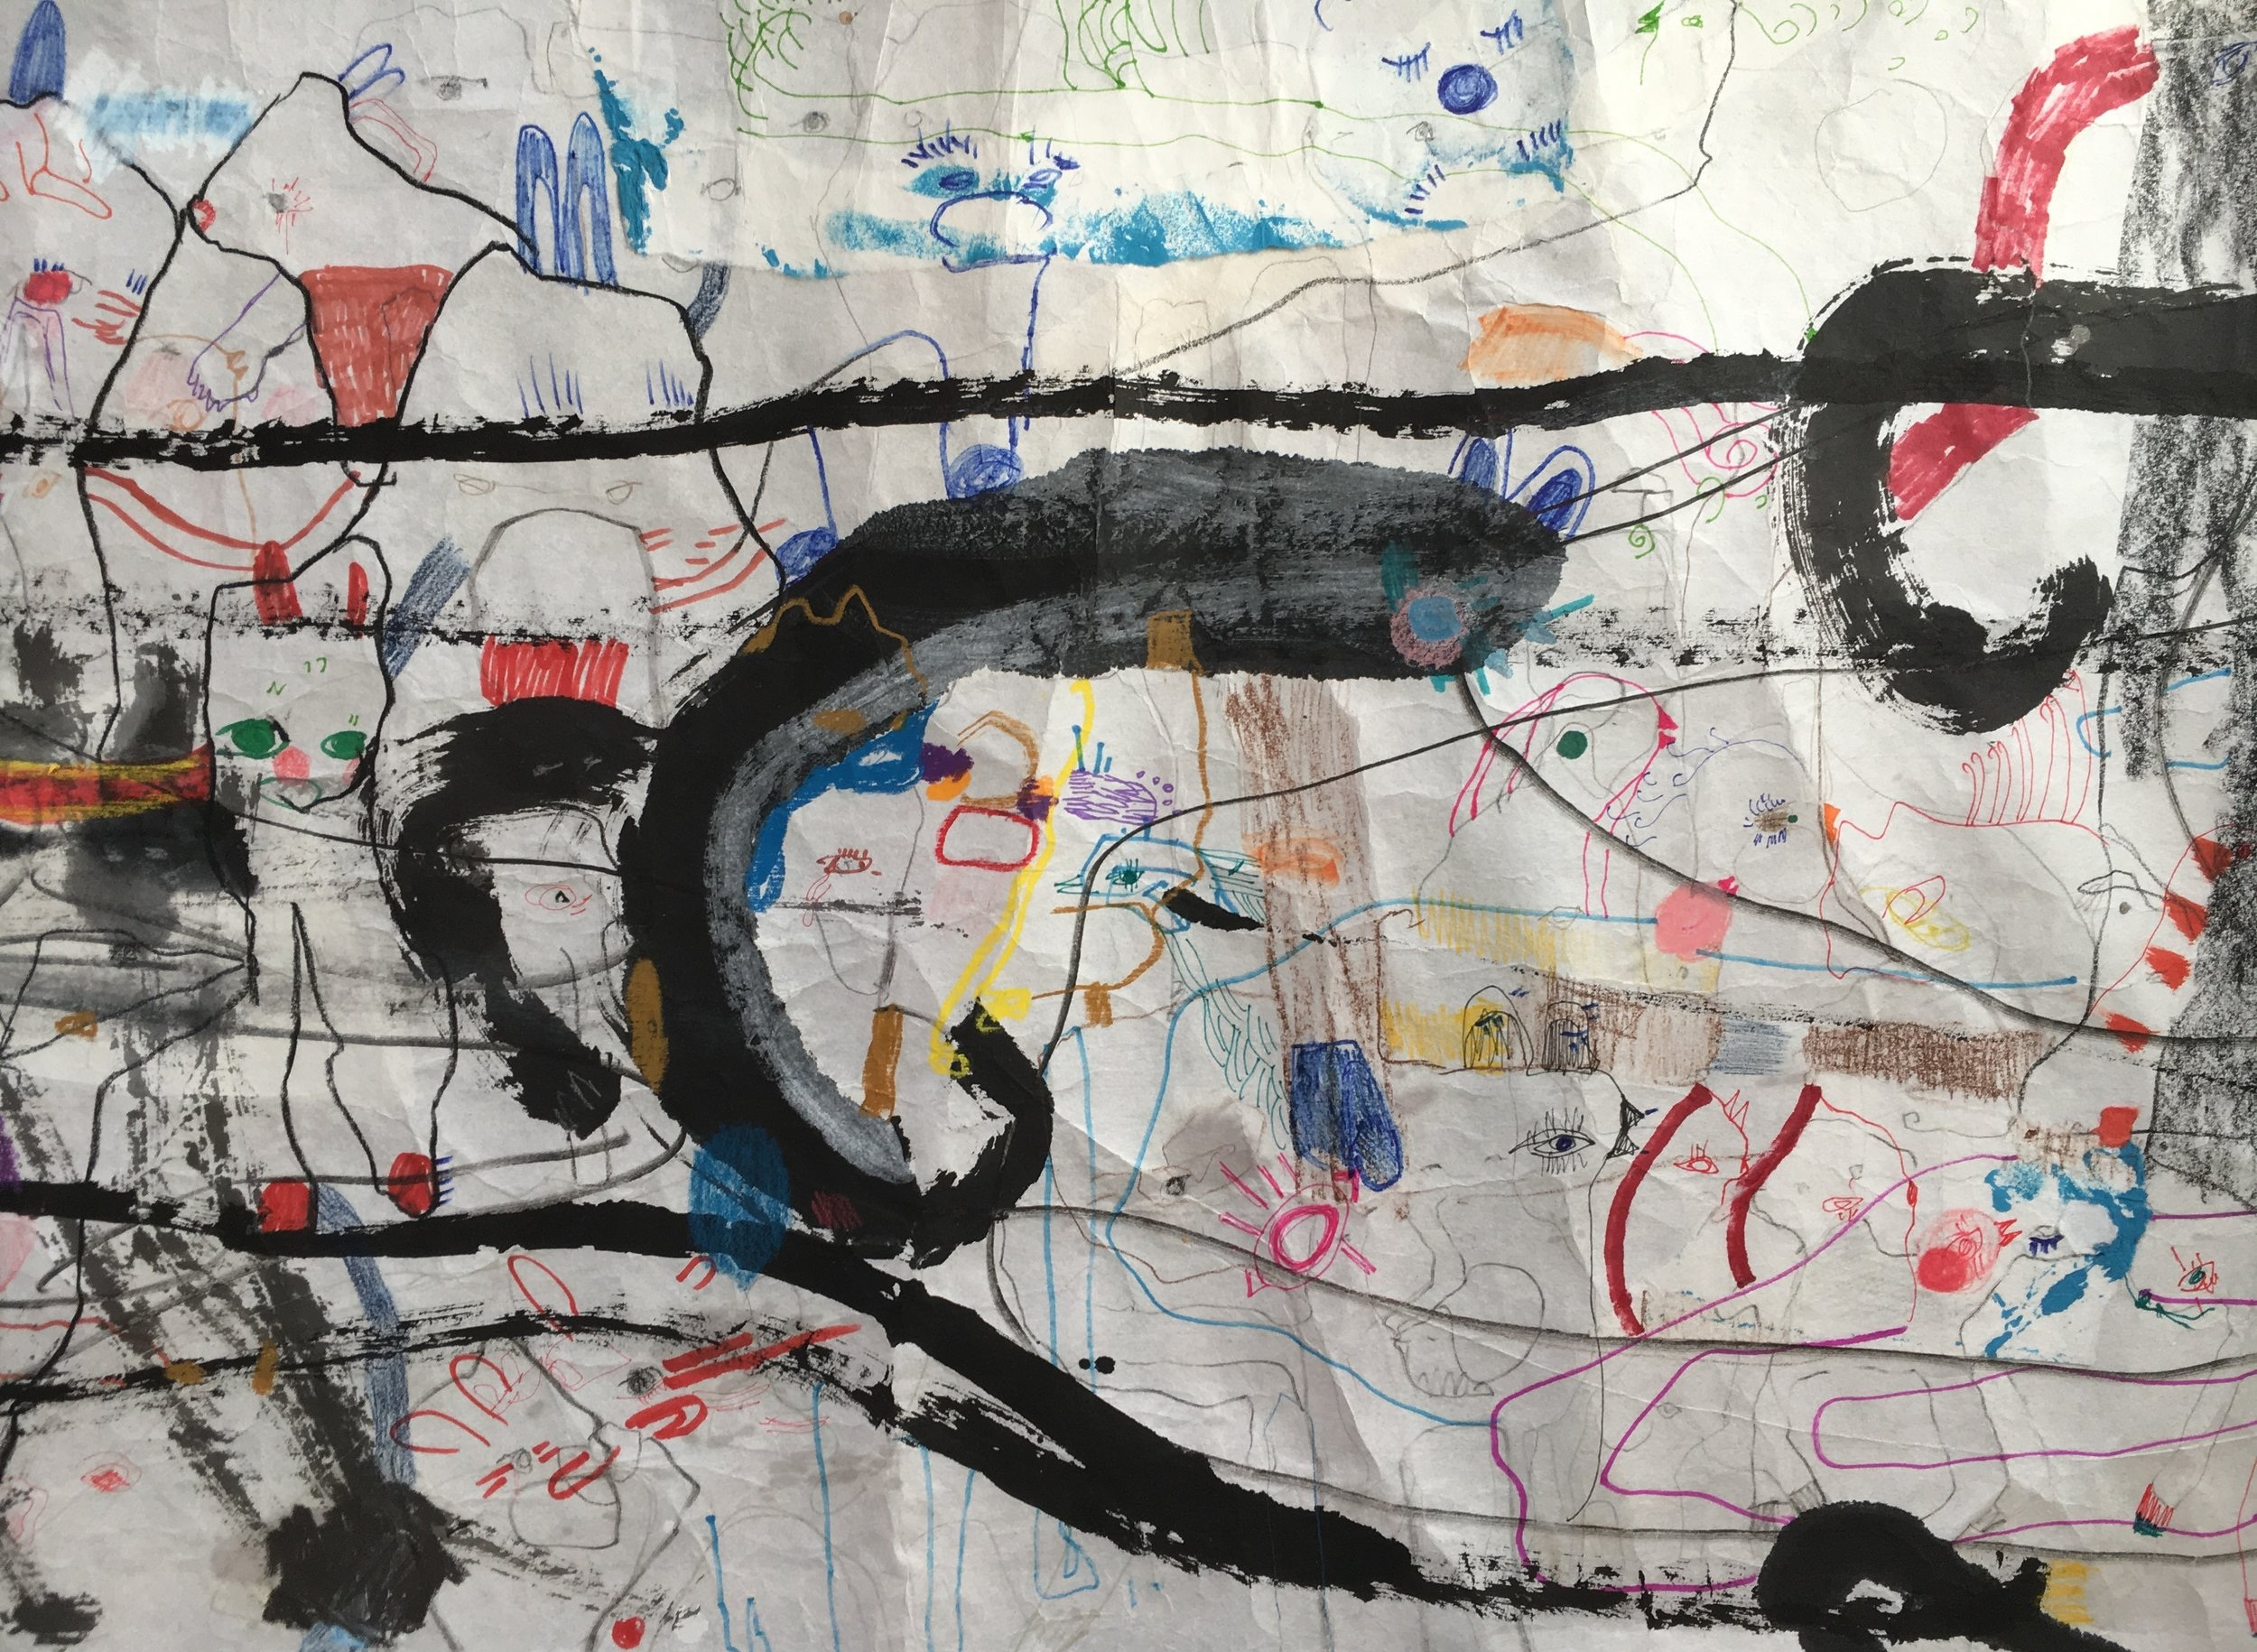 Up Above and All Around, Scroll Section 4  Ink, crayon, dye, watercolor, acrylic, pencil, and rice paper on mulberry paper 2.5 x 30 feet*